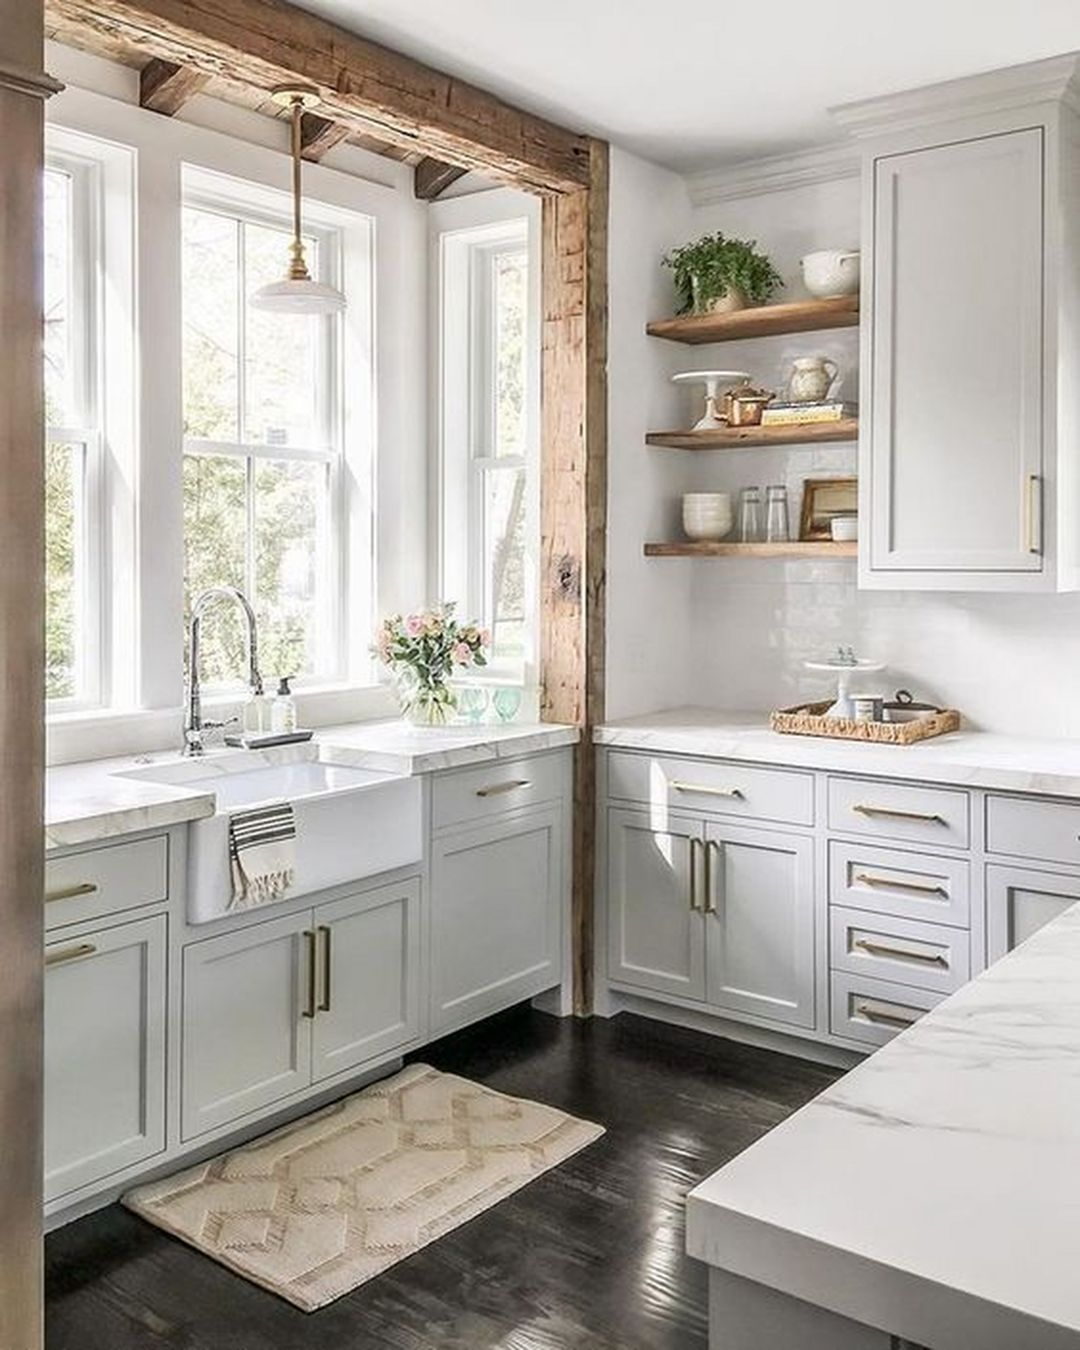 20 Best Rustic Kitchen Design You Have To See It | Home Design